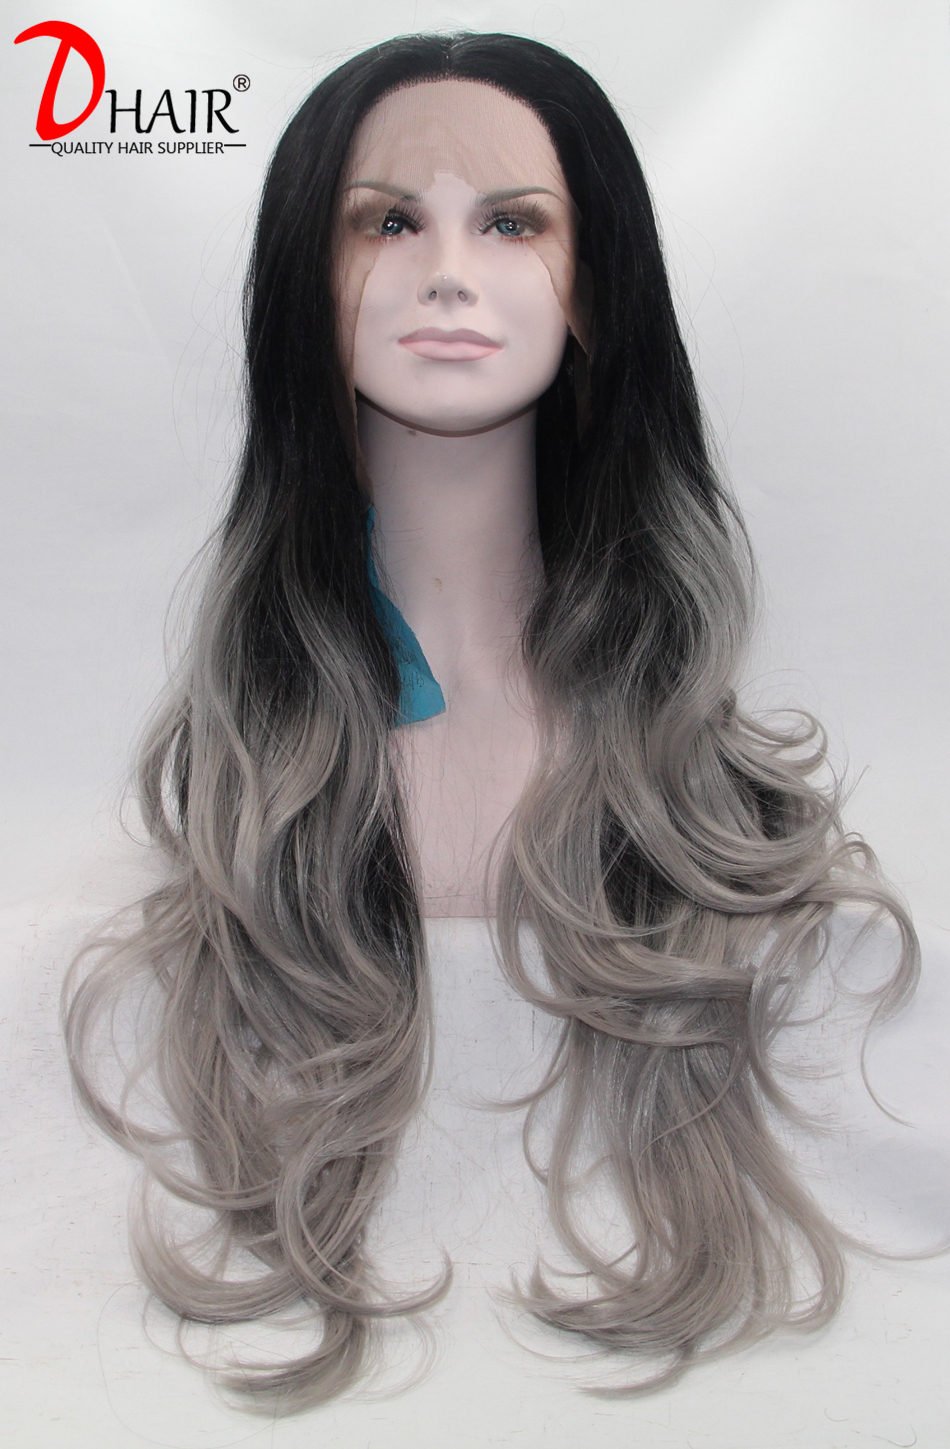 Ombre Silver Grey Synthetic Lace Front Wig Wavy Glueless Long Natural Black/Grey Heat Resistant Hair Lace Front Wigs For Women<br><br>Aliexpress